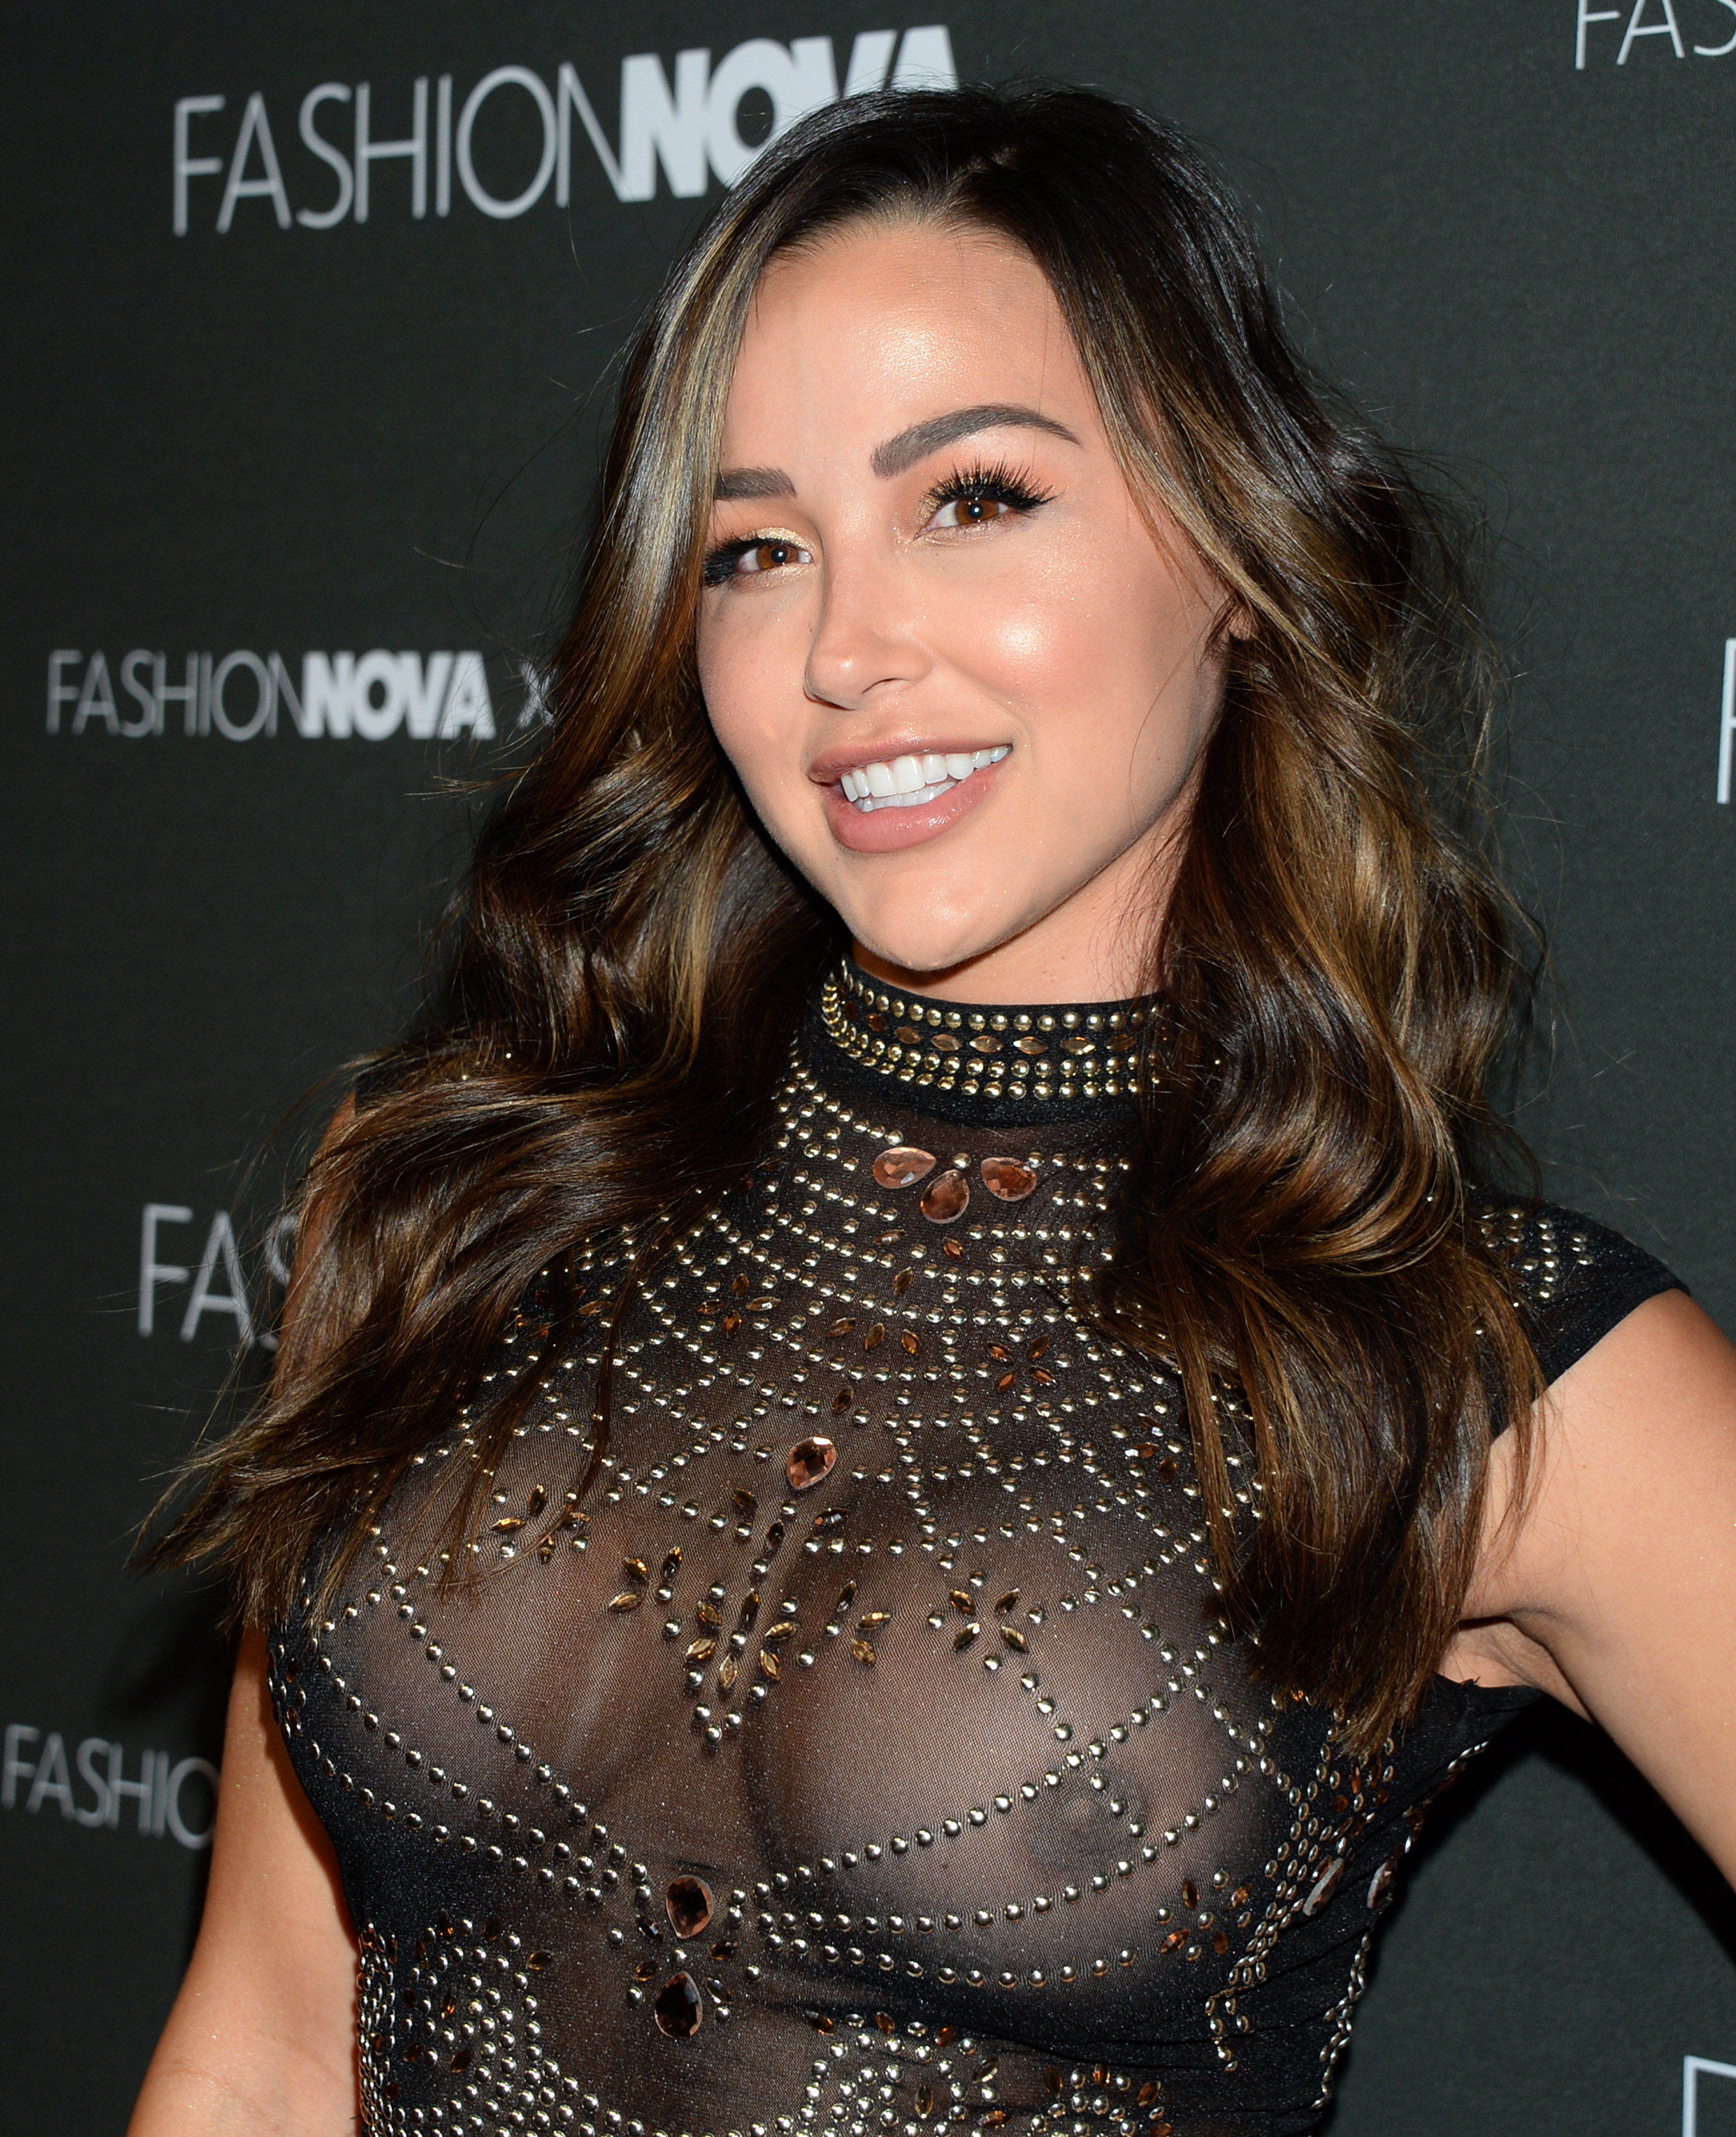 Ana Cheri Nude Onlyfans Leaked 0015